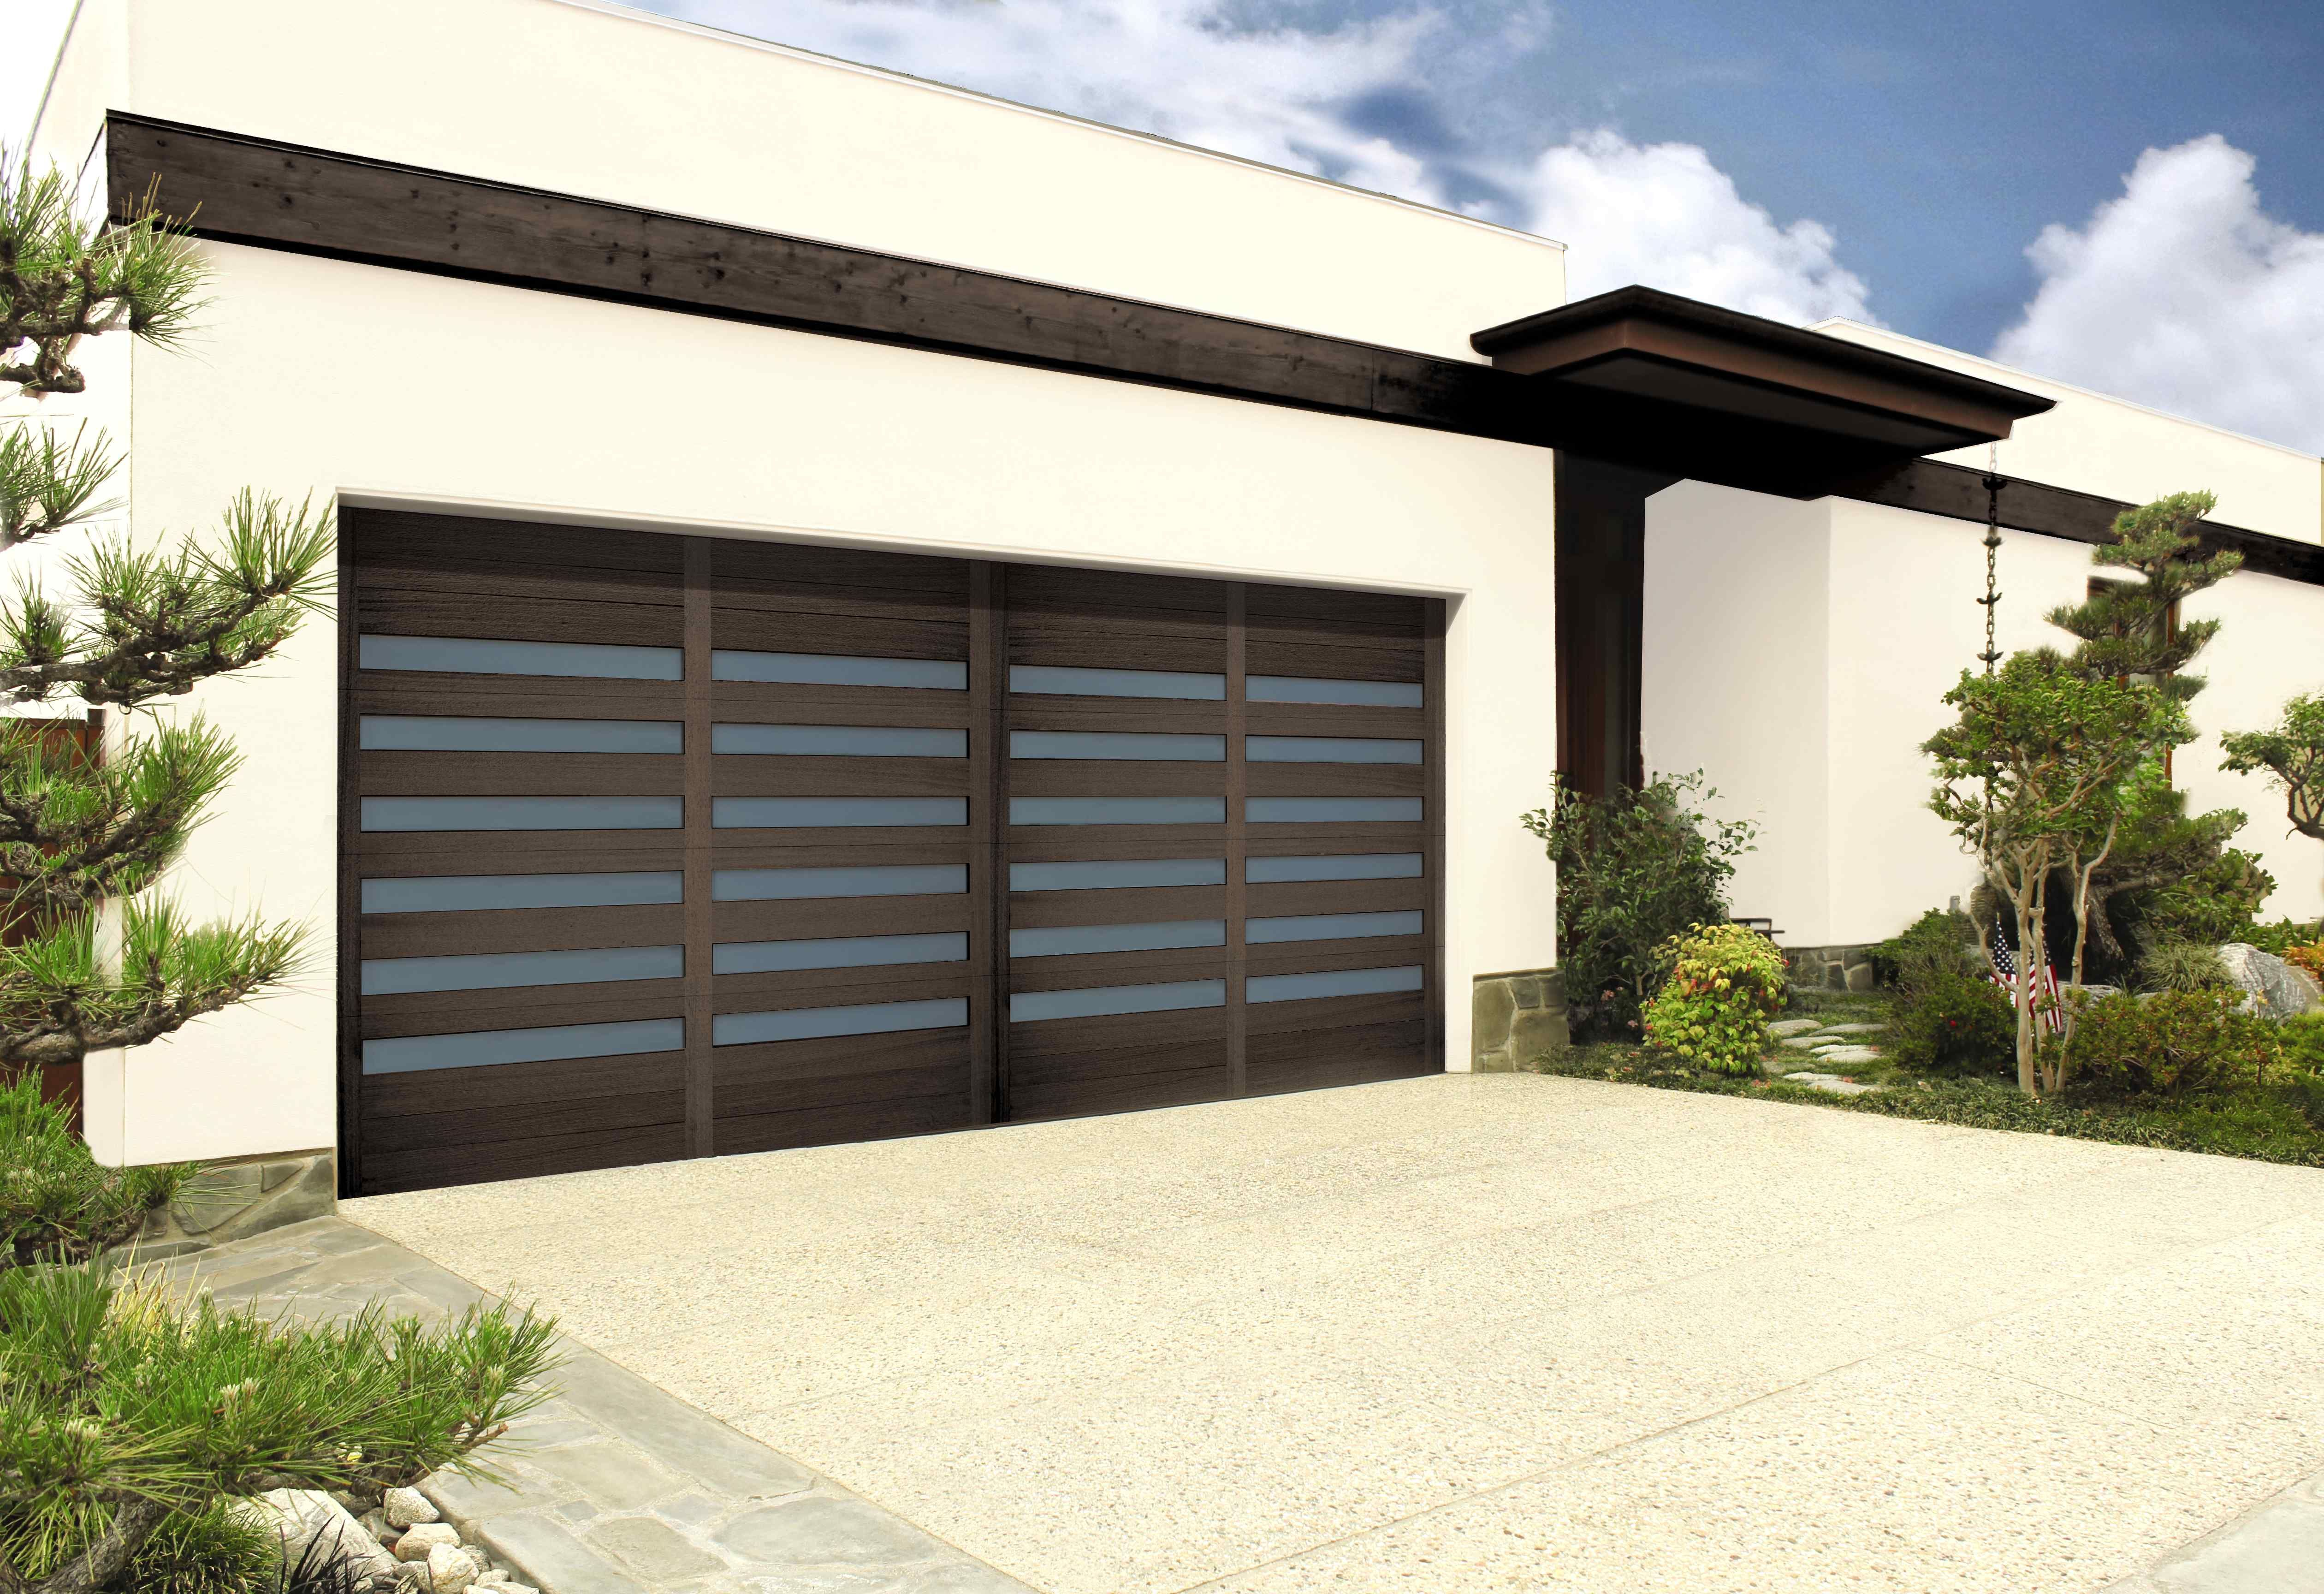 Modern design garage door modern contemporary architecture real wood garage doors from wayne dalton will be sure to add beauty to any home type with many styles and options to choose from rubansaba